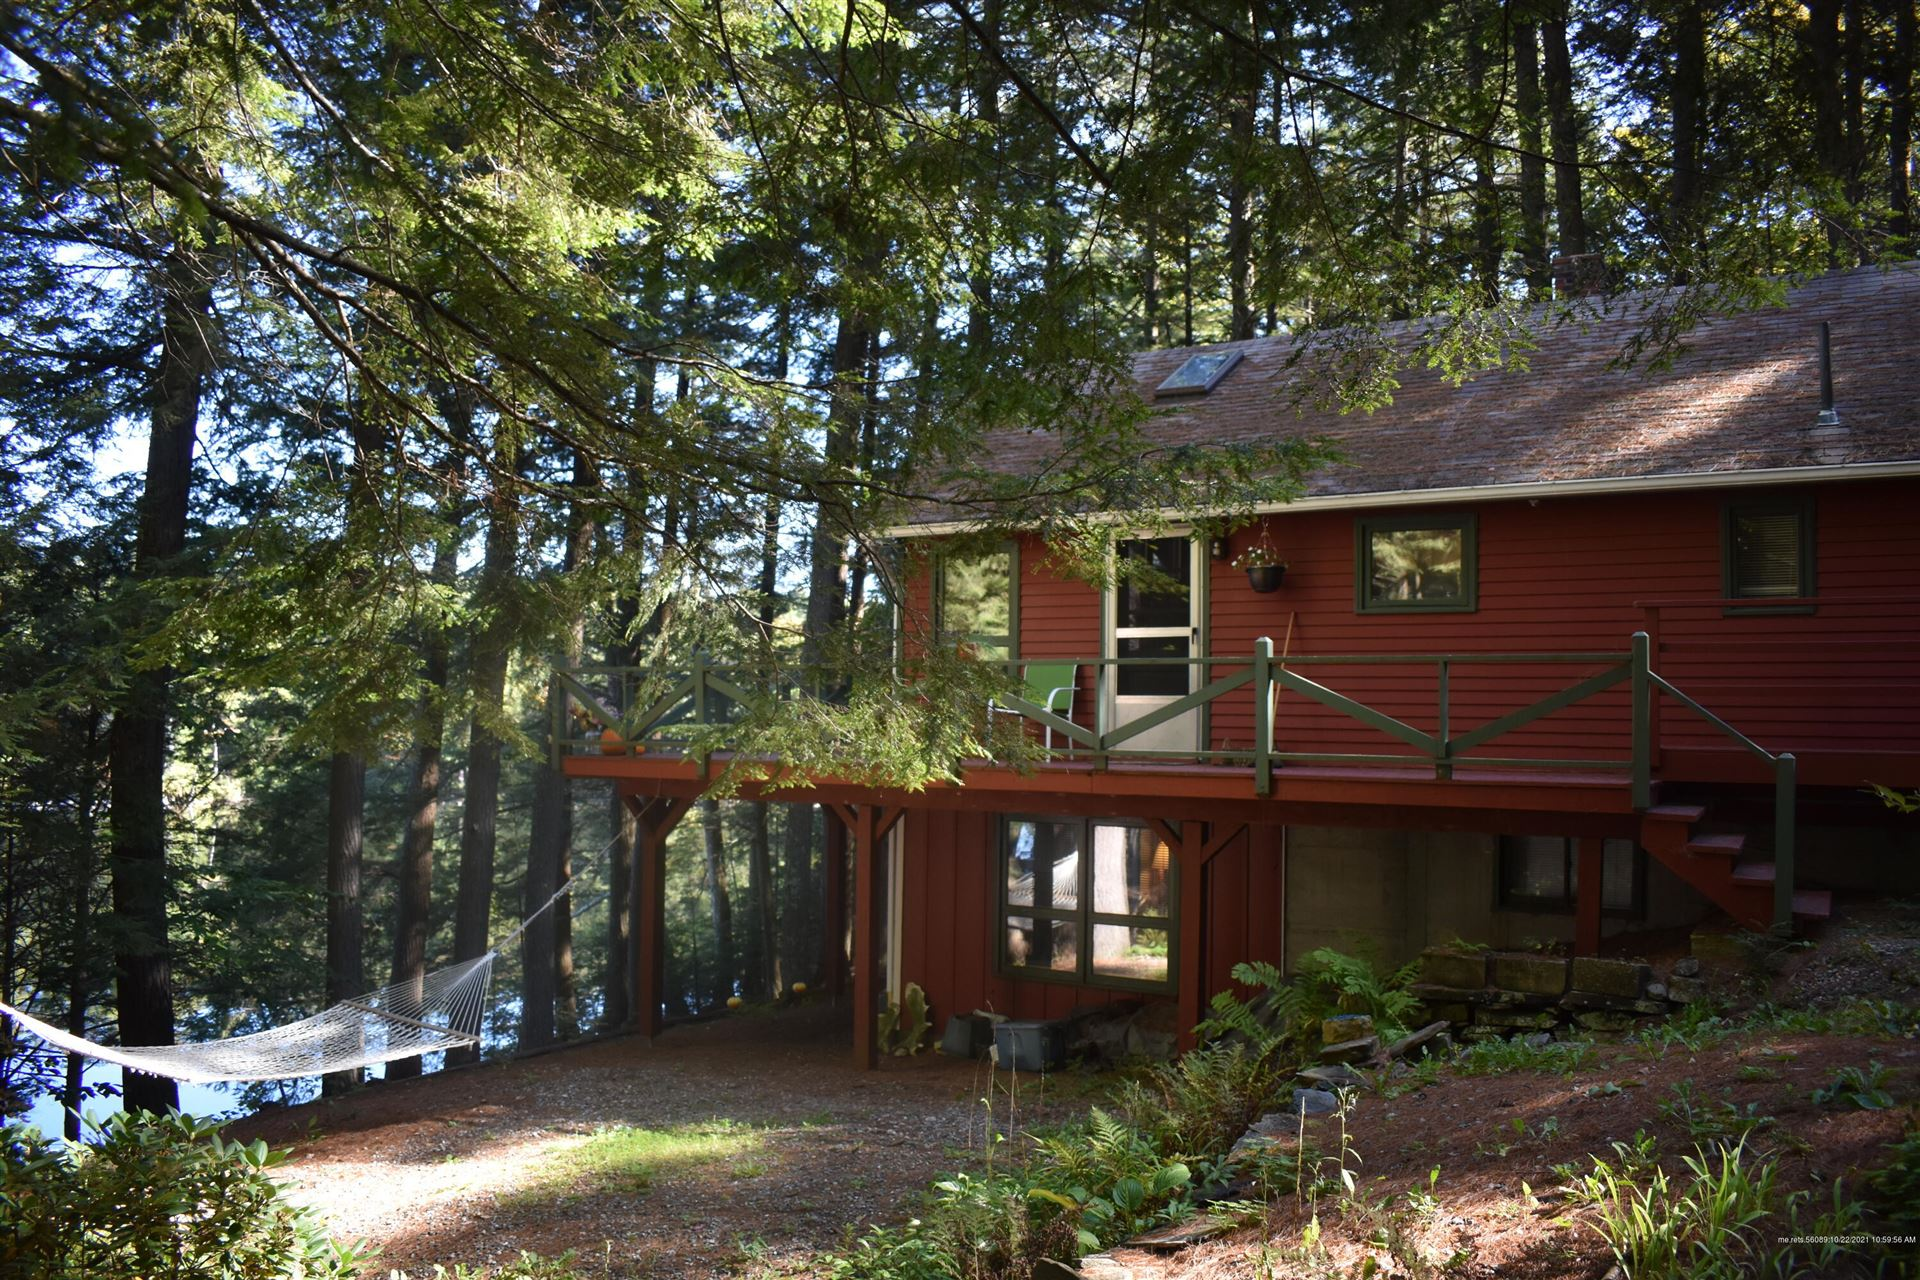 Photo of 70 Lakeview Drive, Readfield, ME 04355 (MLS # 1512860)